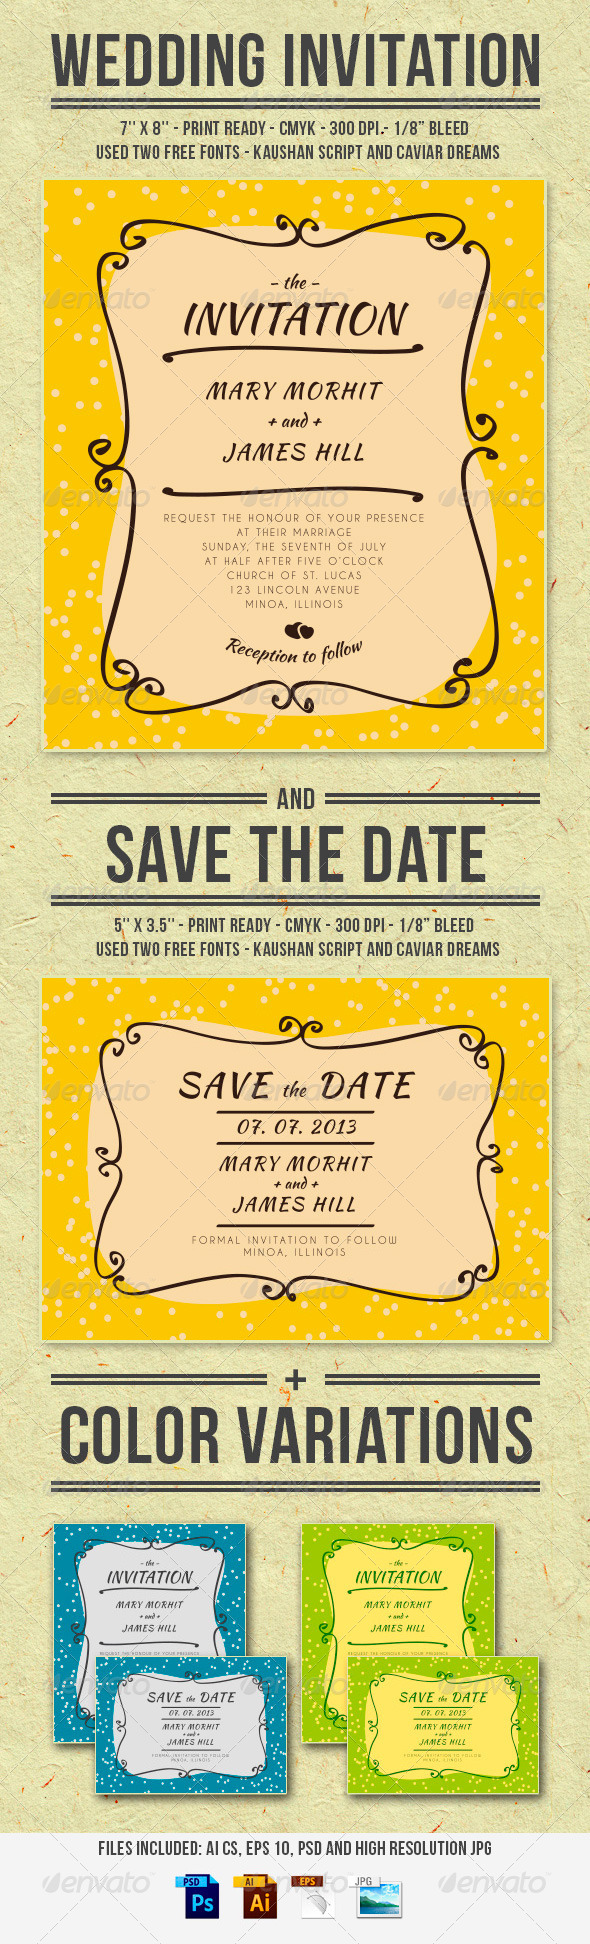 Wedding Invitation and Save The Date